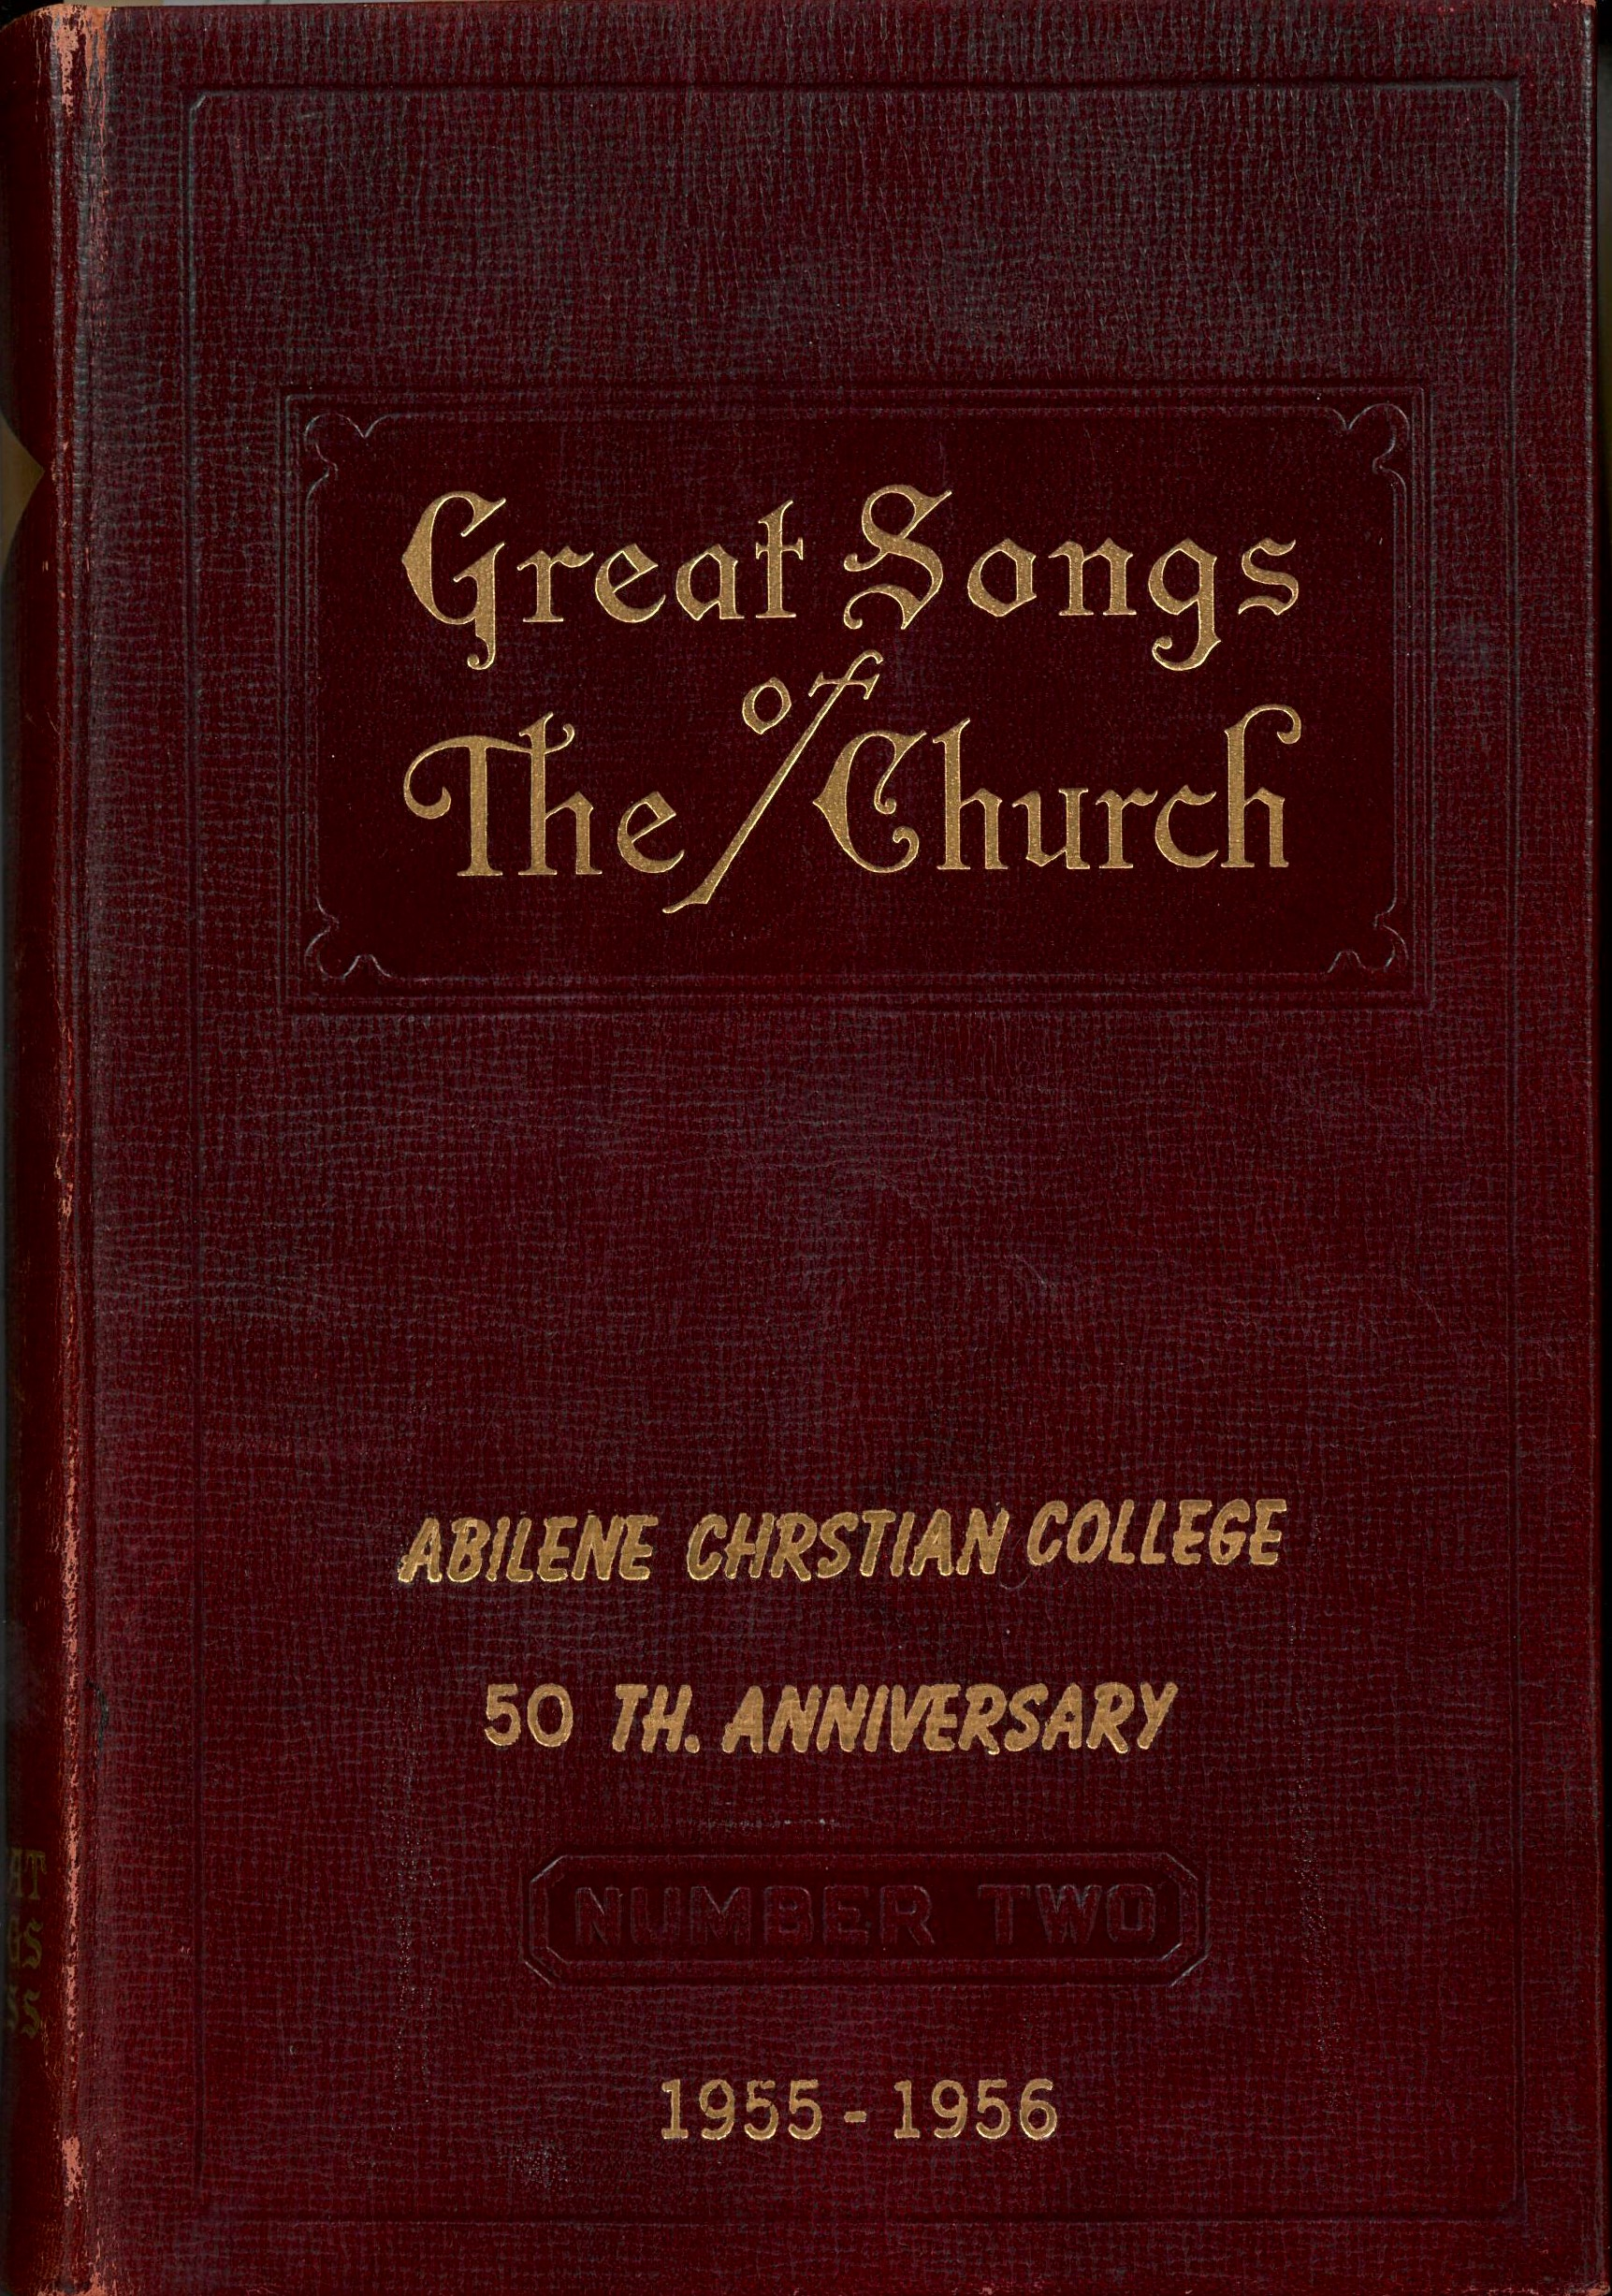 The New Alphabetical Hymnal. Great Songs of the Church Number Two. A Treasury of Six Hundred Sacred Songs Suitable for All Services of the Church. E. L. Jorgenson, Compiler. Great Songs Press: Chicago, 1955. Front cover.